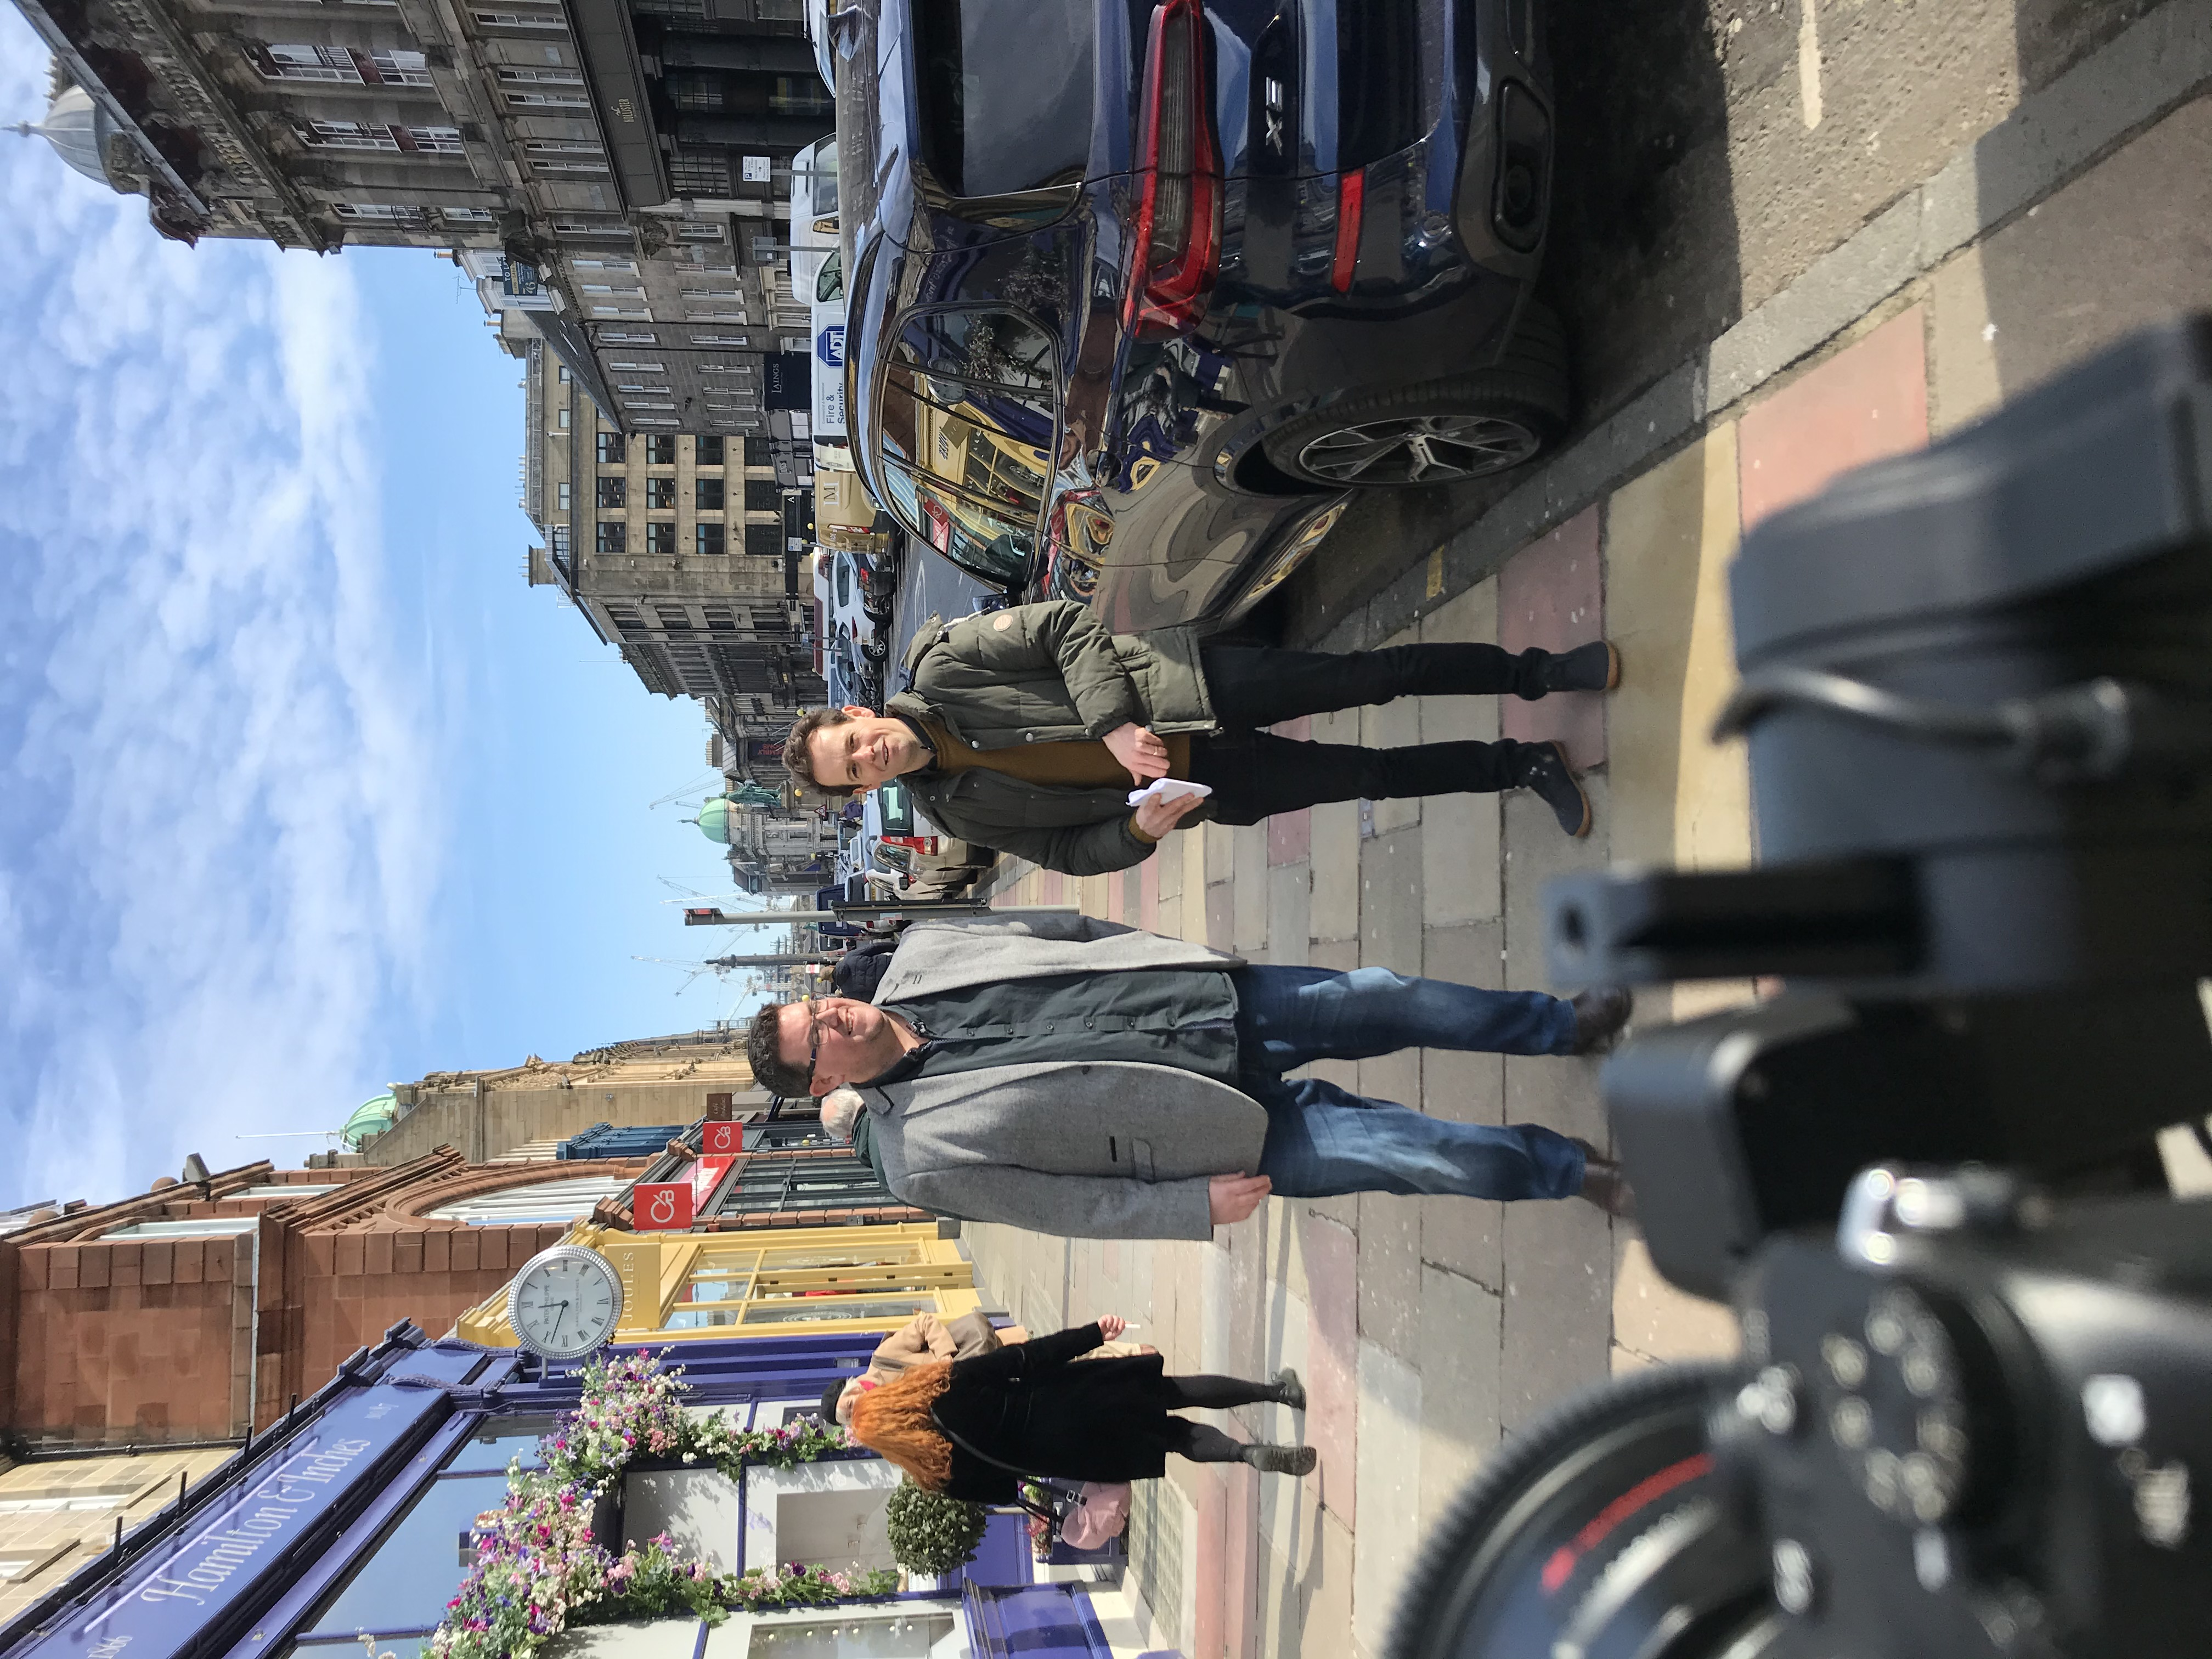 The crowdcube shoot